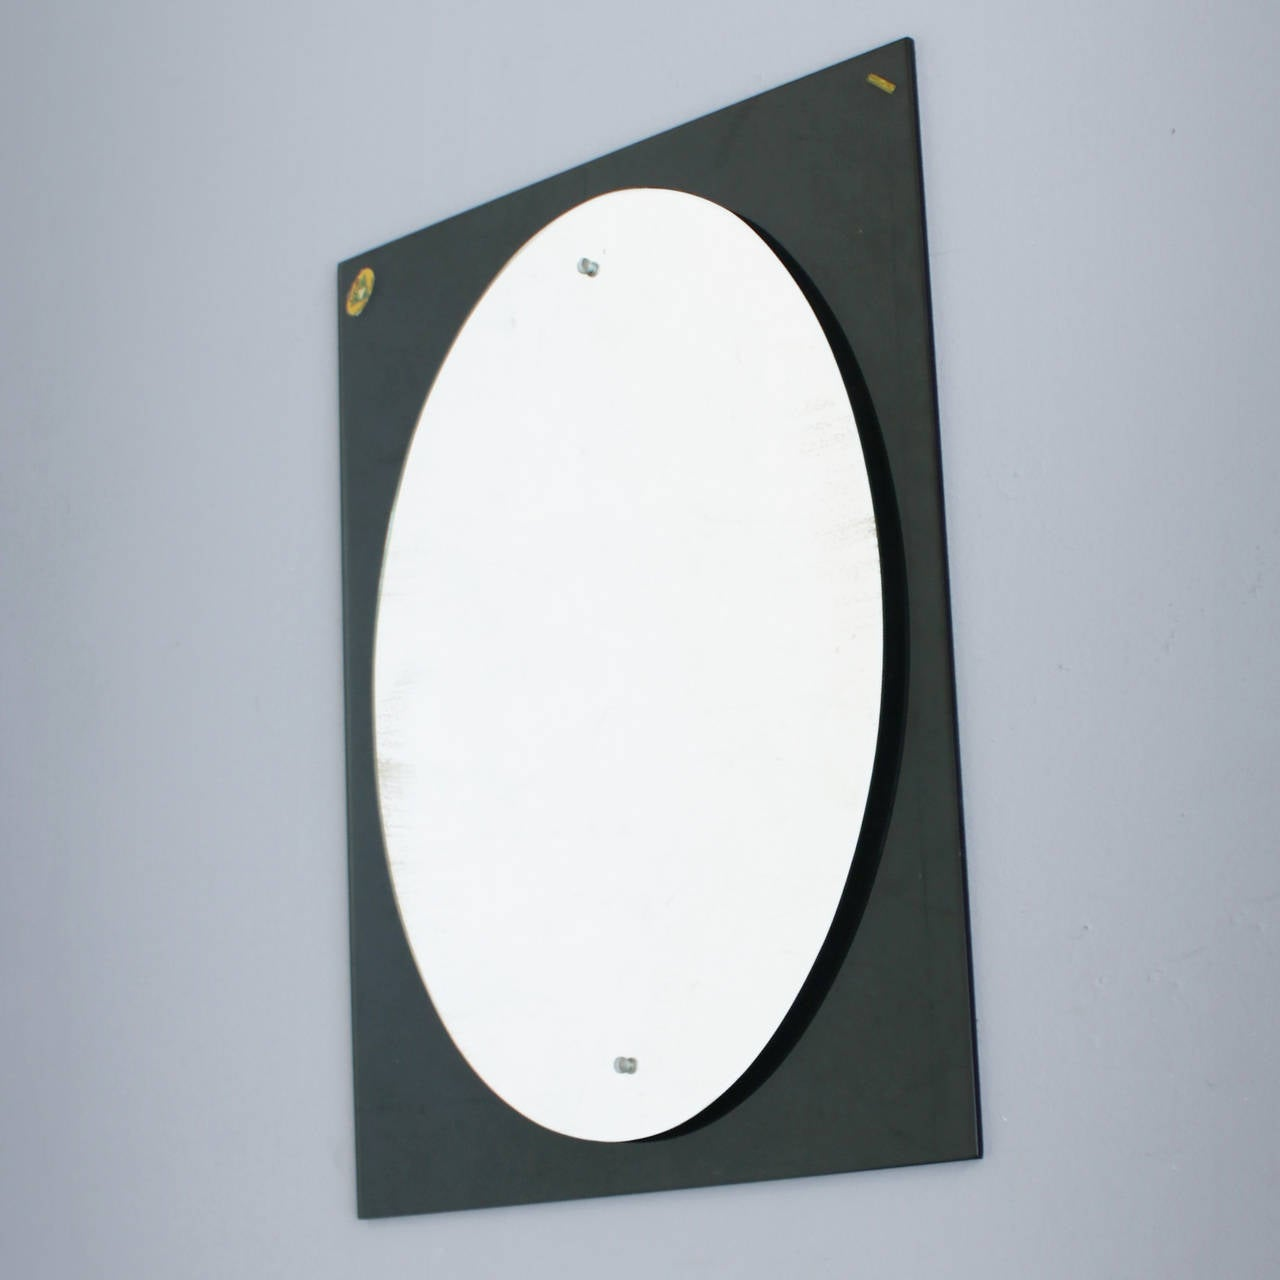 Typical Italian mirror from the 1950s. Though the mirror is marked with a Caprotti sticker, this Monza based company is rather a retailer than a manufacturer. Already in the 1950s the shop was selling products of brands like Arteluce, Arredoluce and